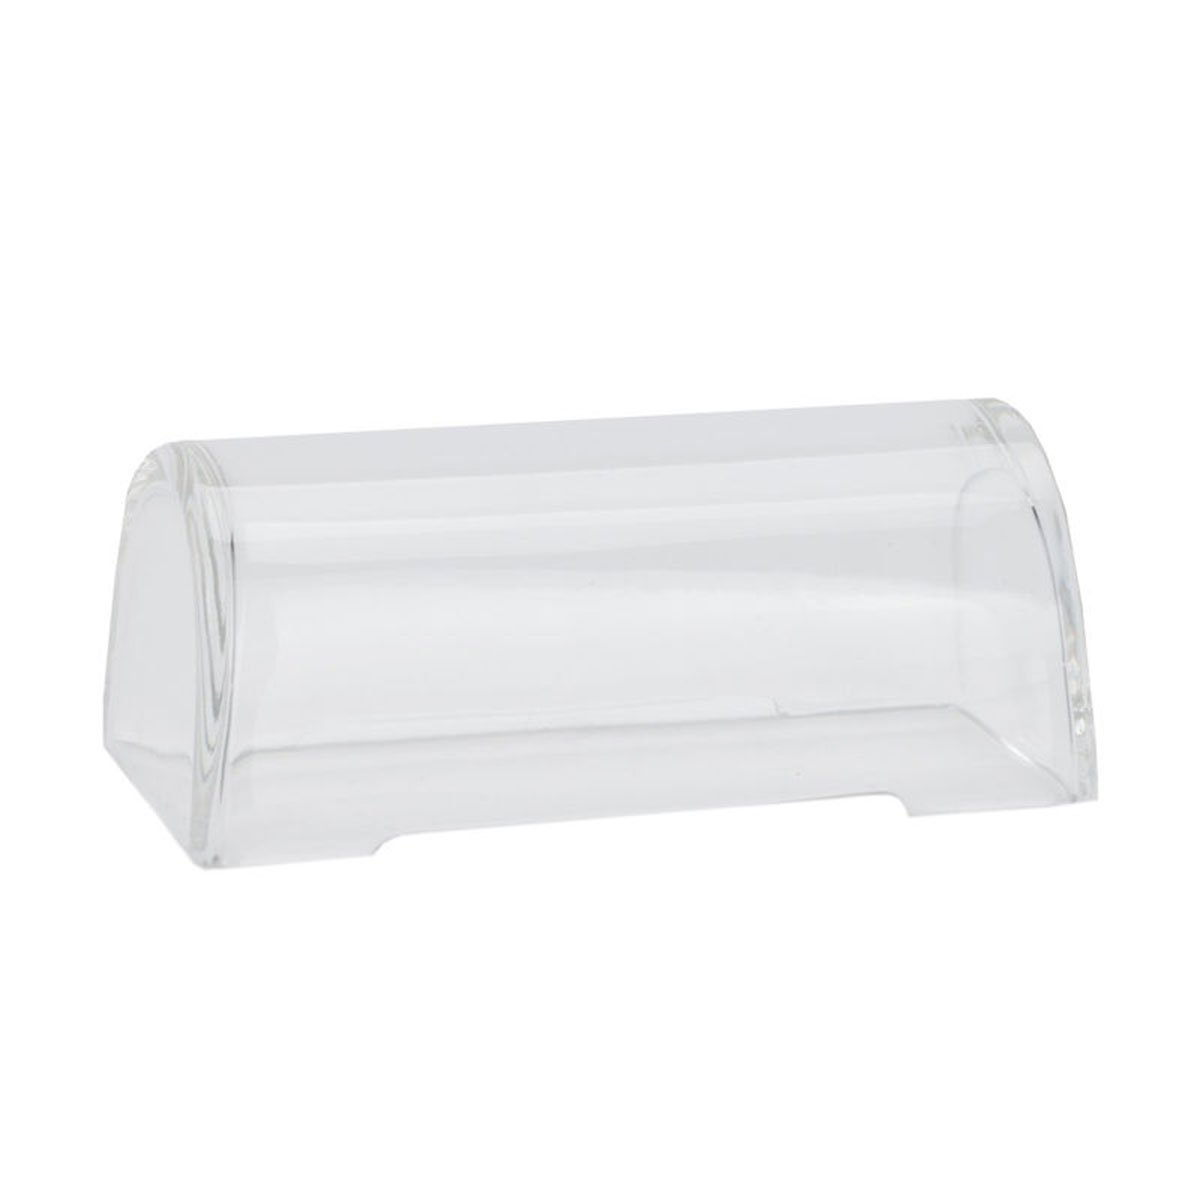 Alessi Replacement Glass for the Graves Butter Dish